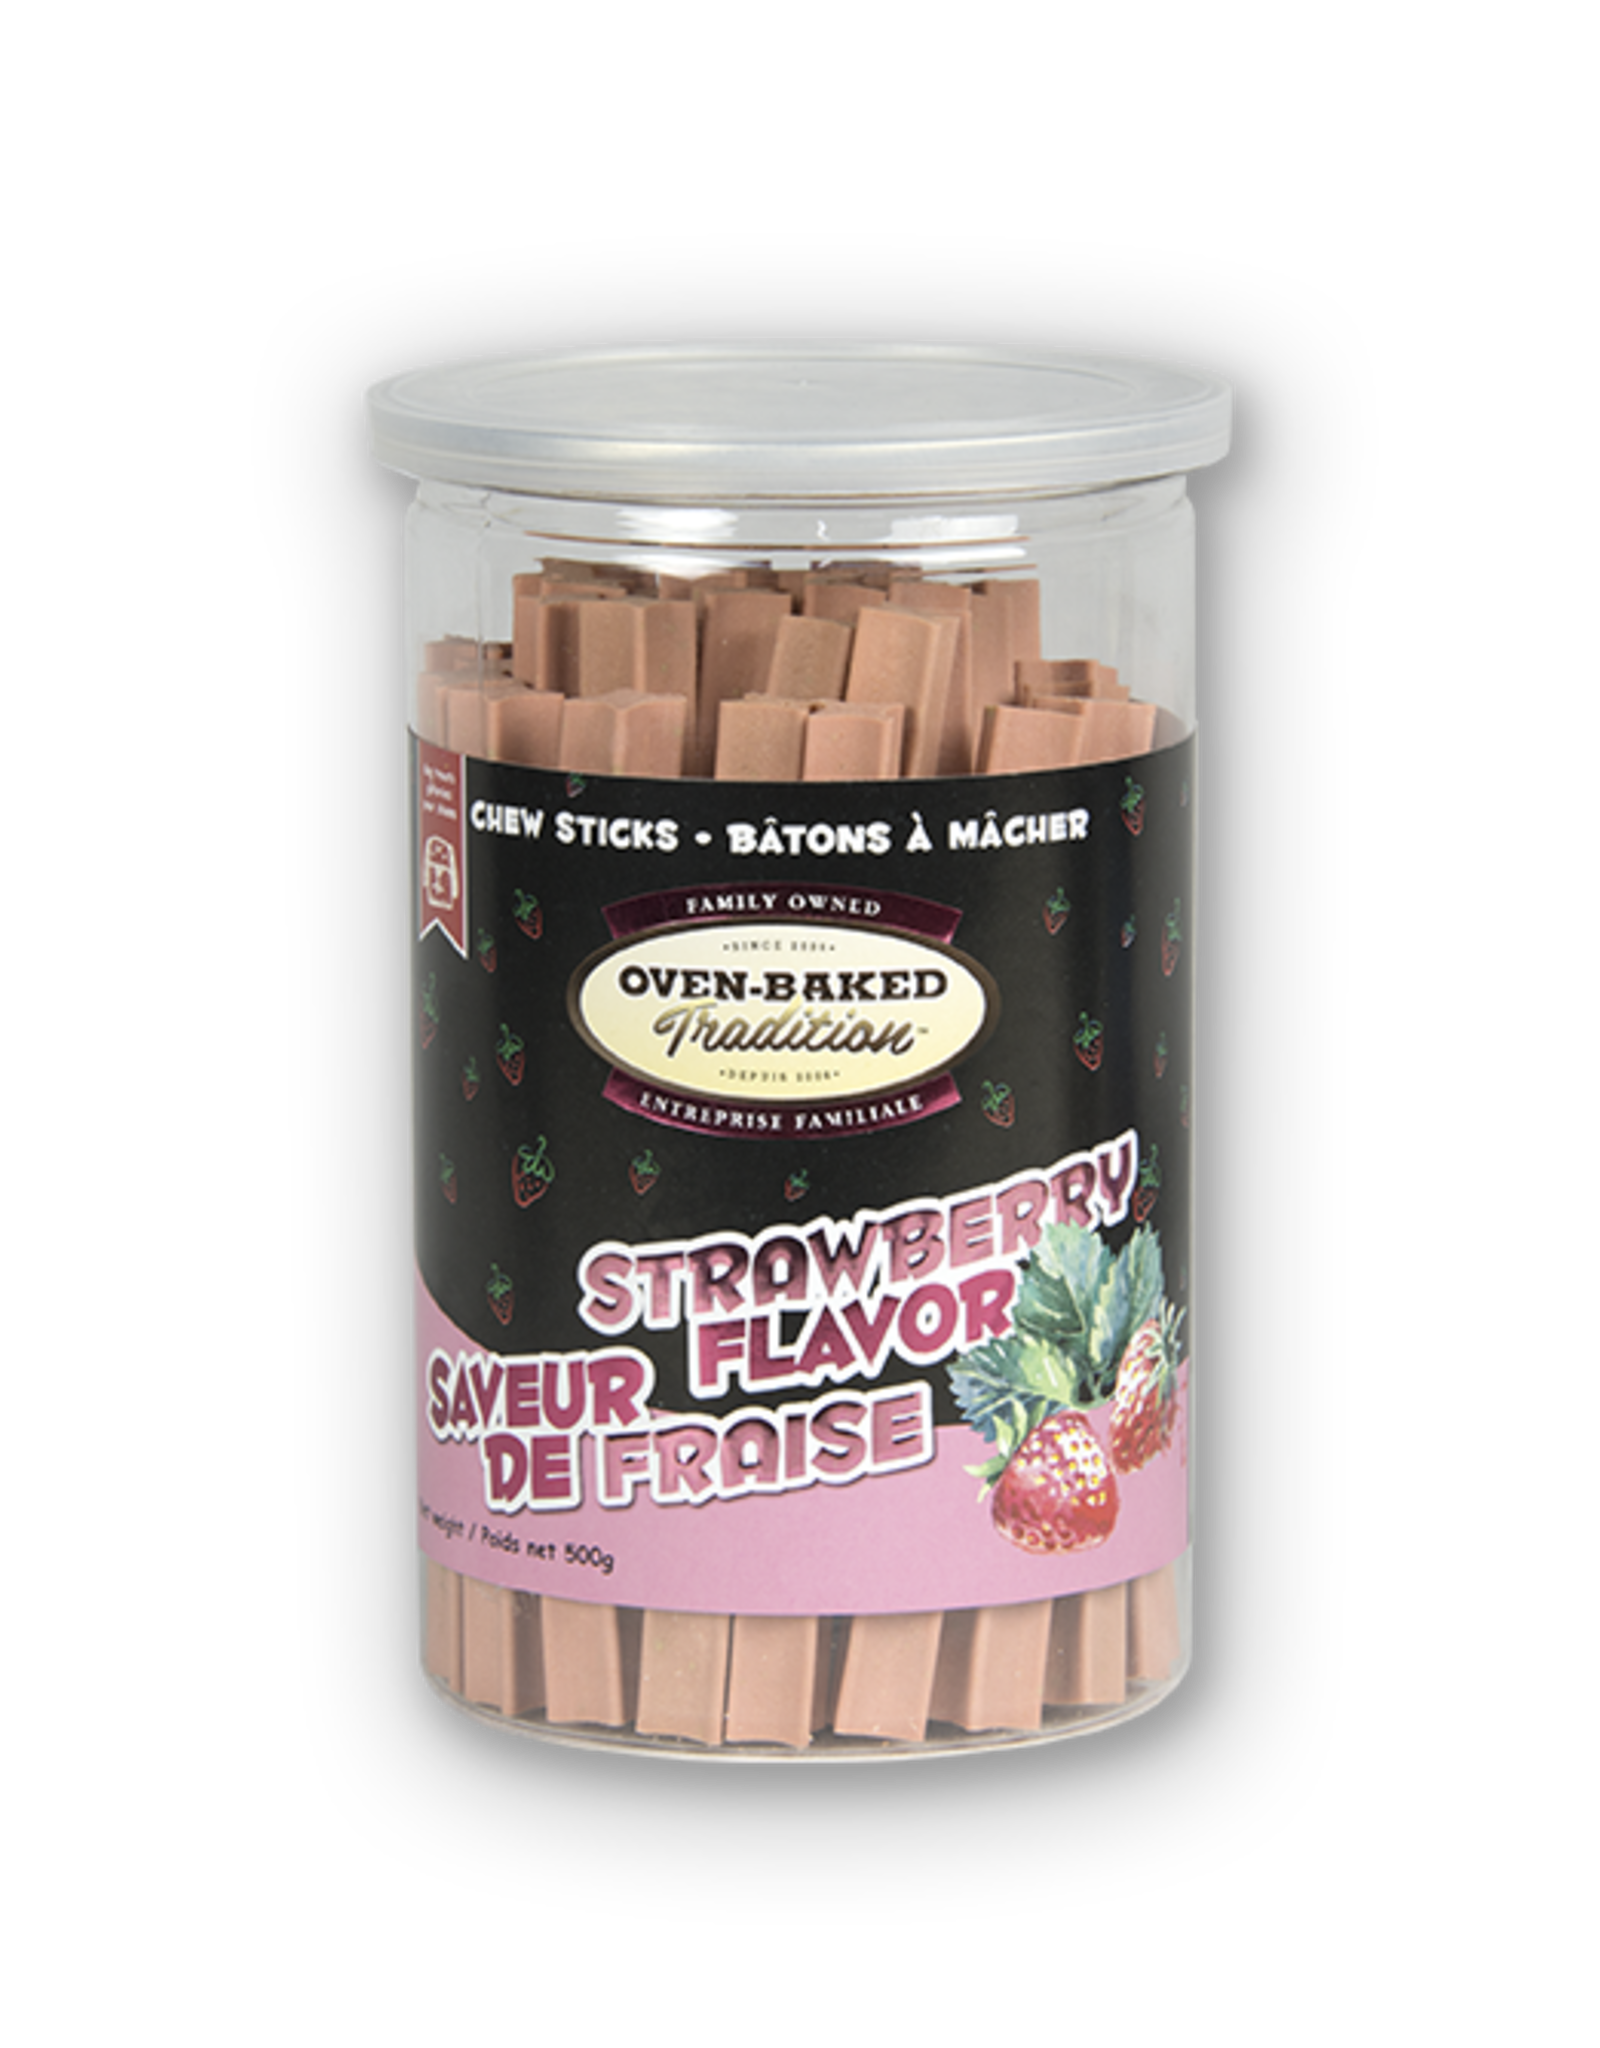 Oven Baked Oven Baked - Strawberry Flavour Chew Sticks 500g